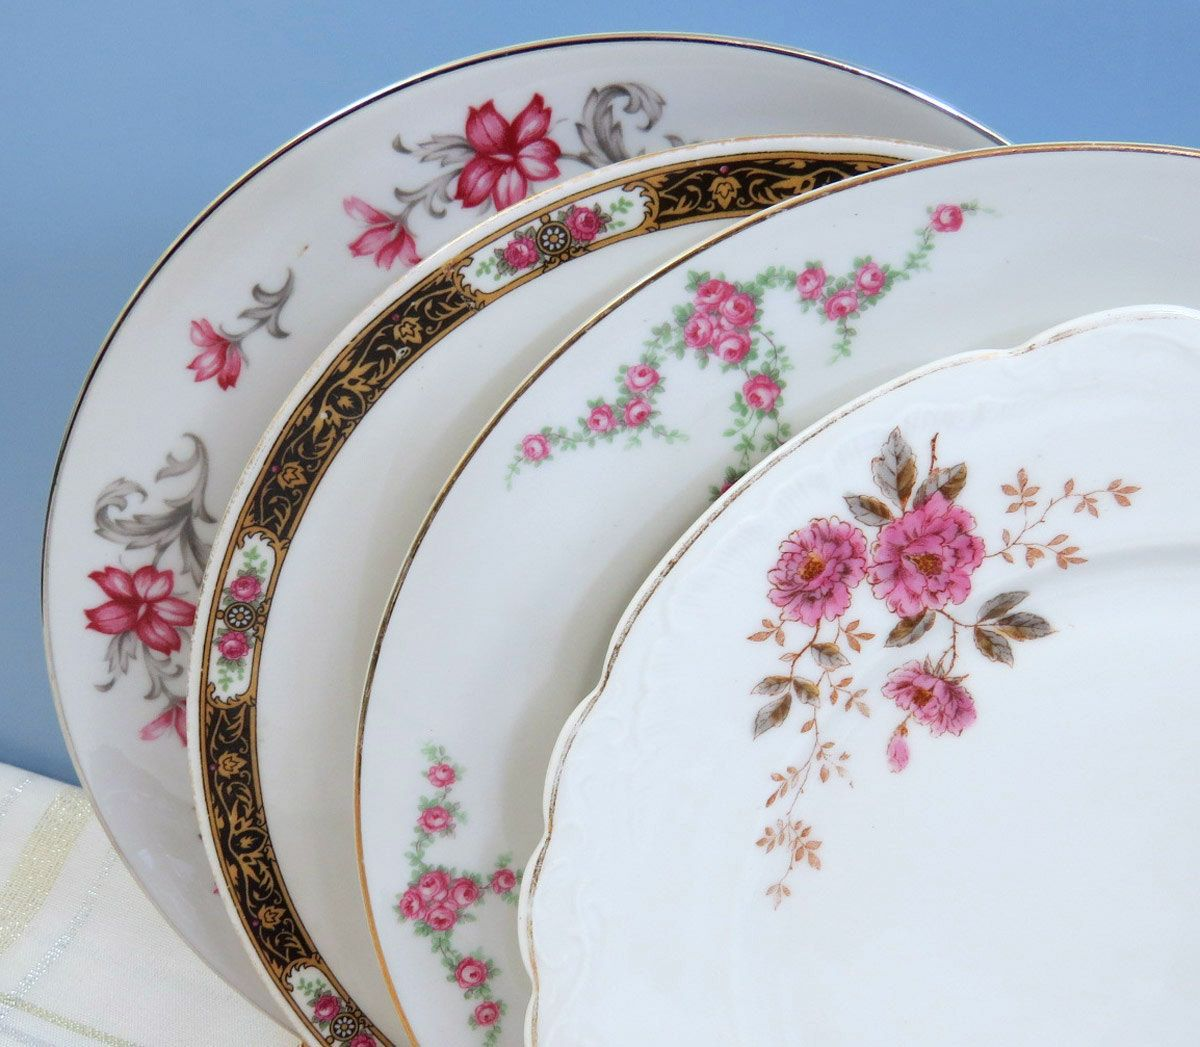 """Set of 4 Mismatched China Plates, 10"""" Dinner Plates, Mix and Match for Vintage Wedding or Tea Party, Pretty Soft Pastels DP32 by GoldenVineDesigns on Etsy"""